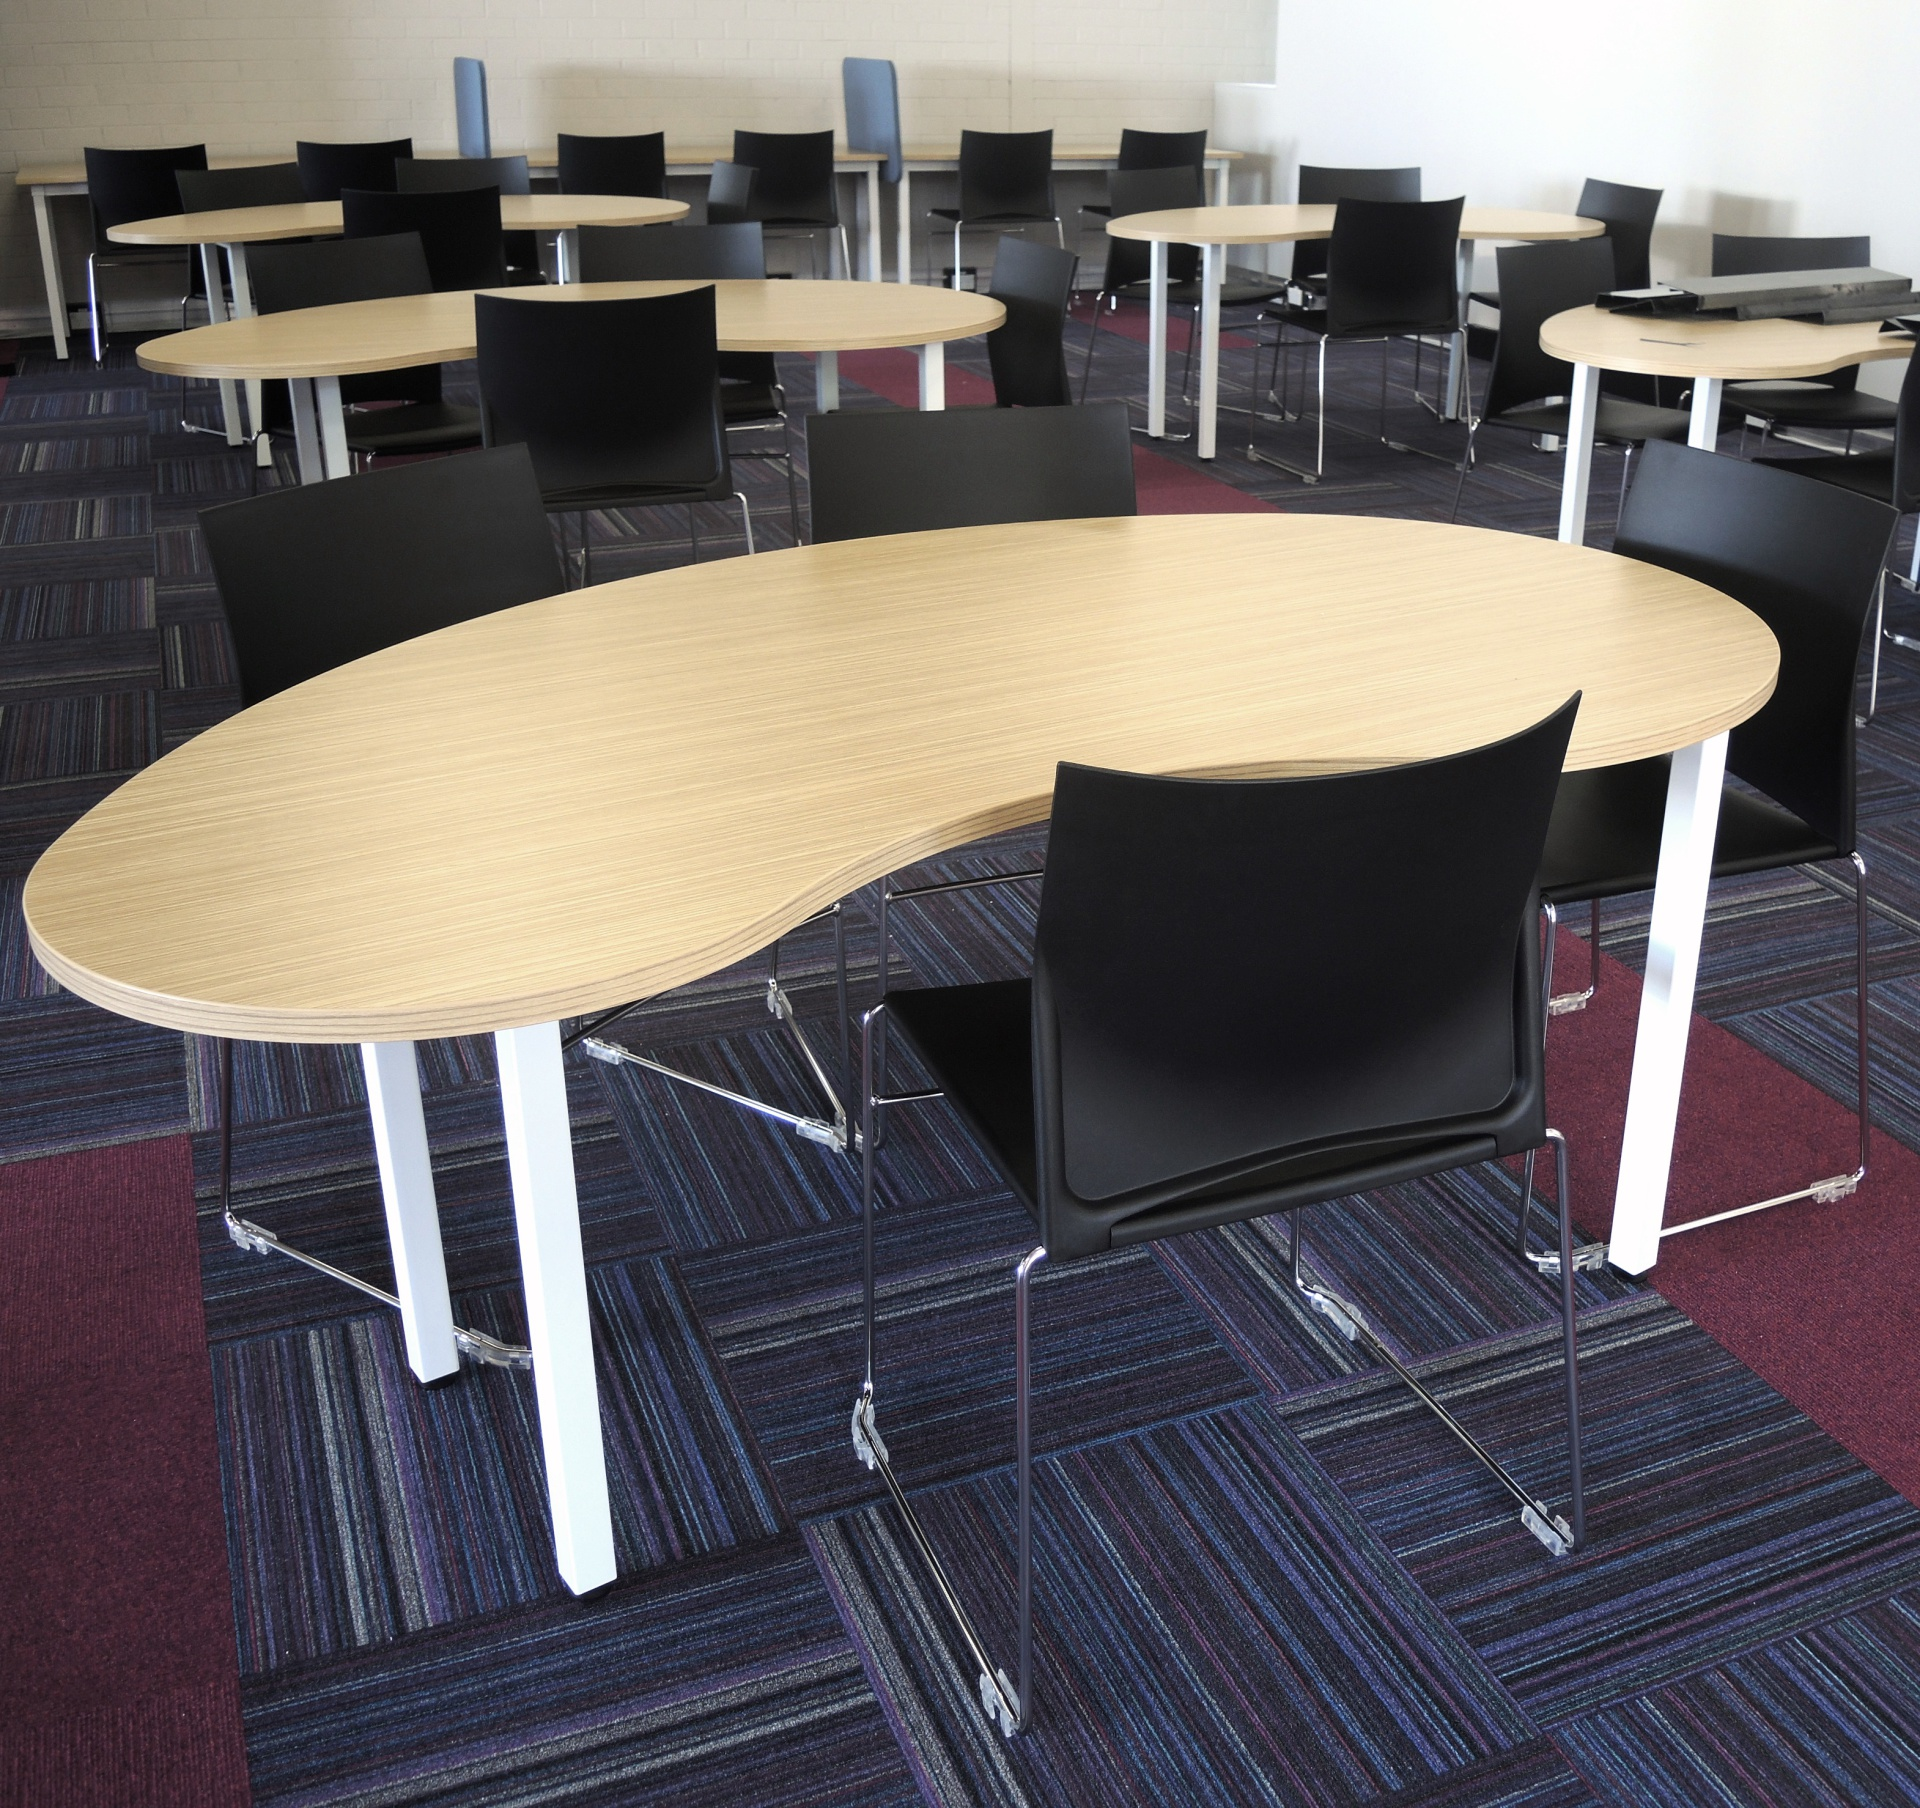 Direct Ergonomics   Sydney Office Furniture Australia   Ergonomic Furniture    Ergonomic Workstations   Sit to Stand Desks   Executive Workstations    Standing Desk Converters   Collaborative Seating   Executive Seating   Ergonomic Chairs   Ergonomic Seating   Visiting Seating Lounges   Learning Space Seating   Australian Made